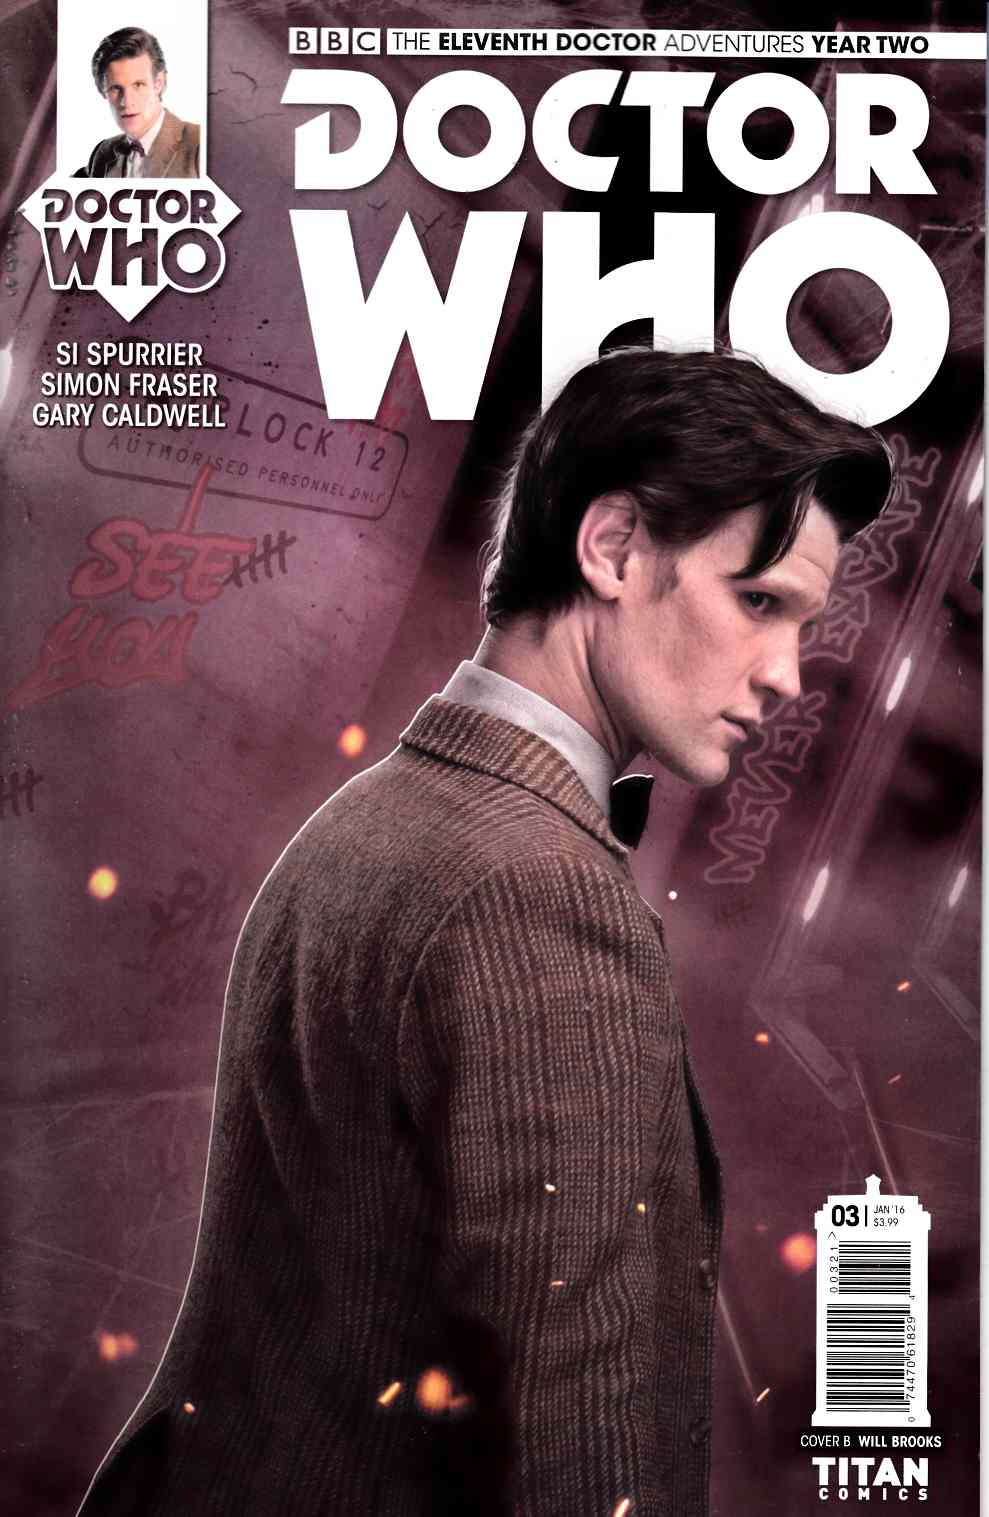 Doctor Who 11th Doctor Year 2 #3 Cover B- Subscription Photo [Titan Comic]